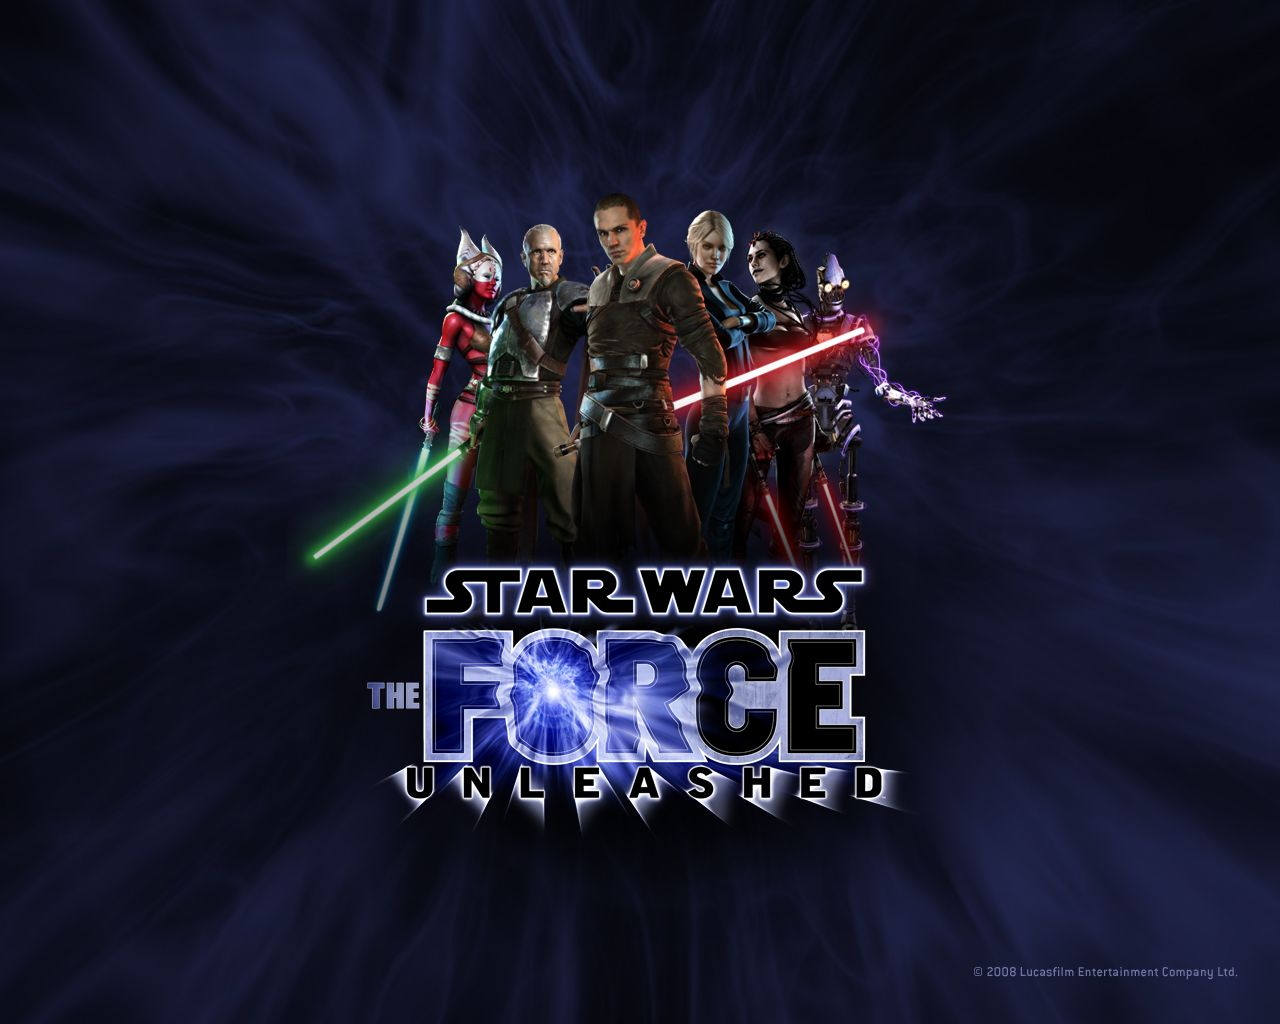 30 Star Wars The Force Unleashed 2 Background Star Wars The Force Unleashed 2 Wallpapers Kaneonuskatew Gilbane